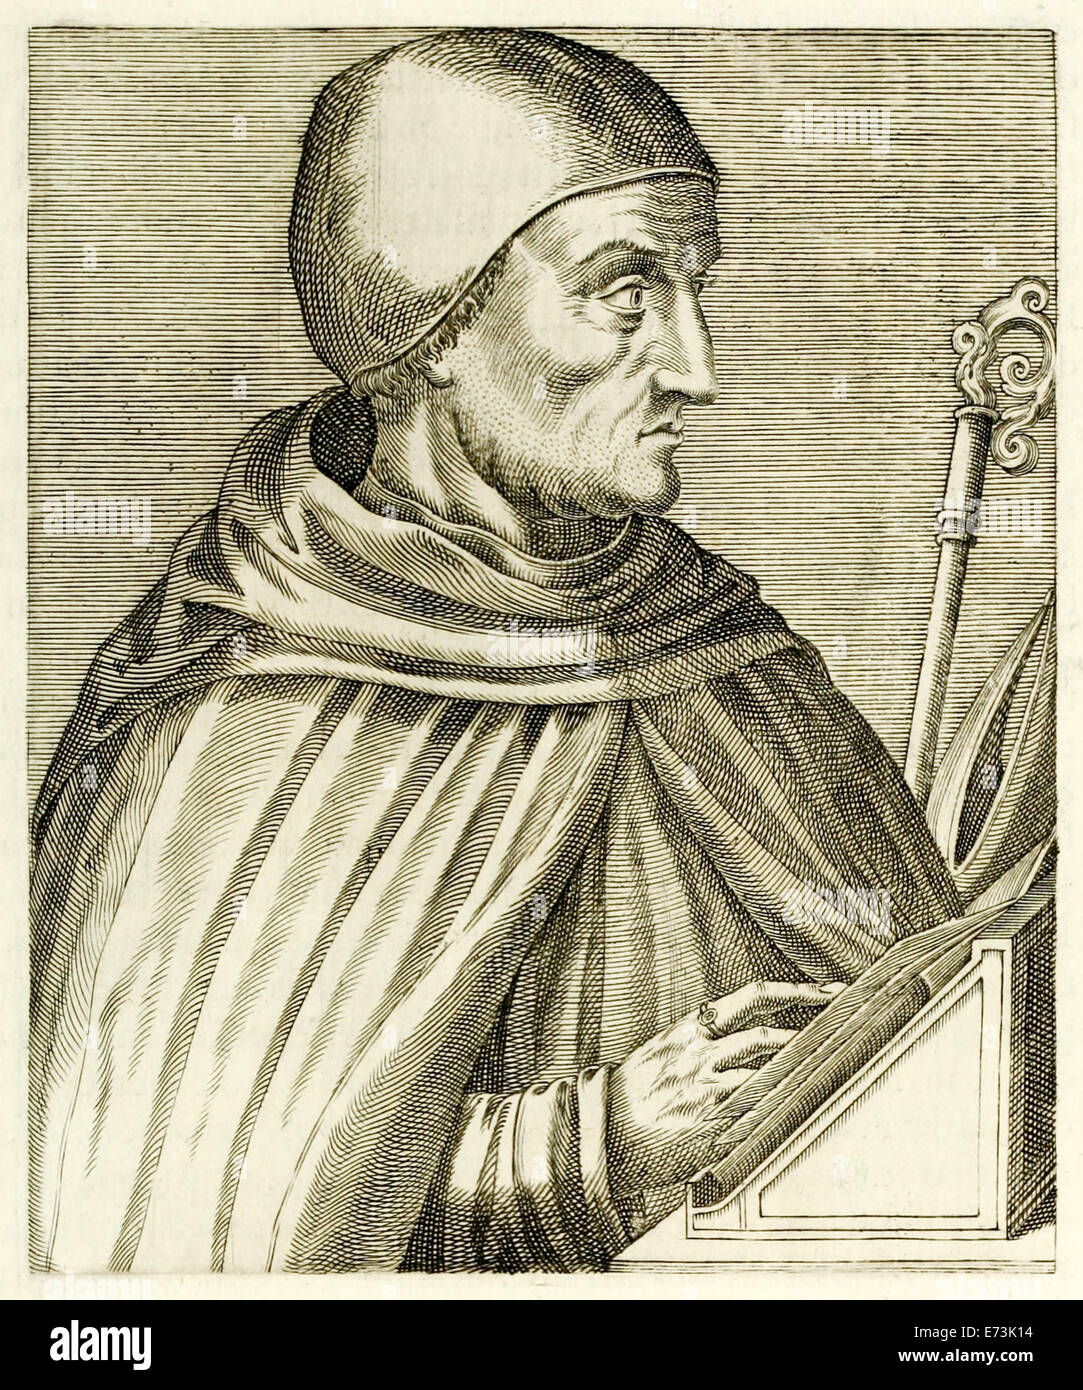 "Albertus Magnus (the Great) (before 1200-1280) from ""True Portraits…"" by André Thévet published in 1594. - Stock Image"